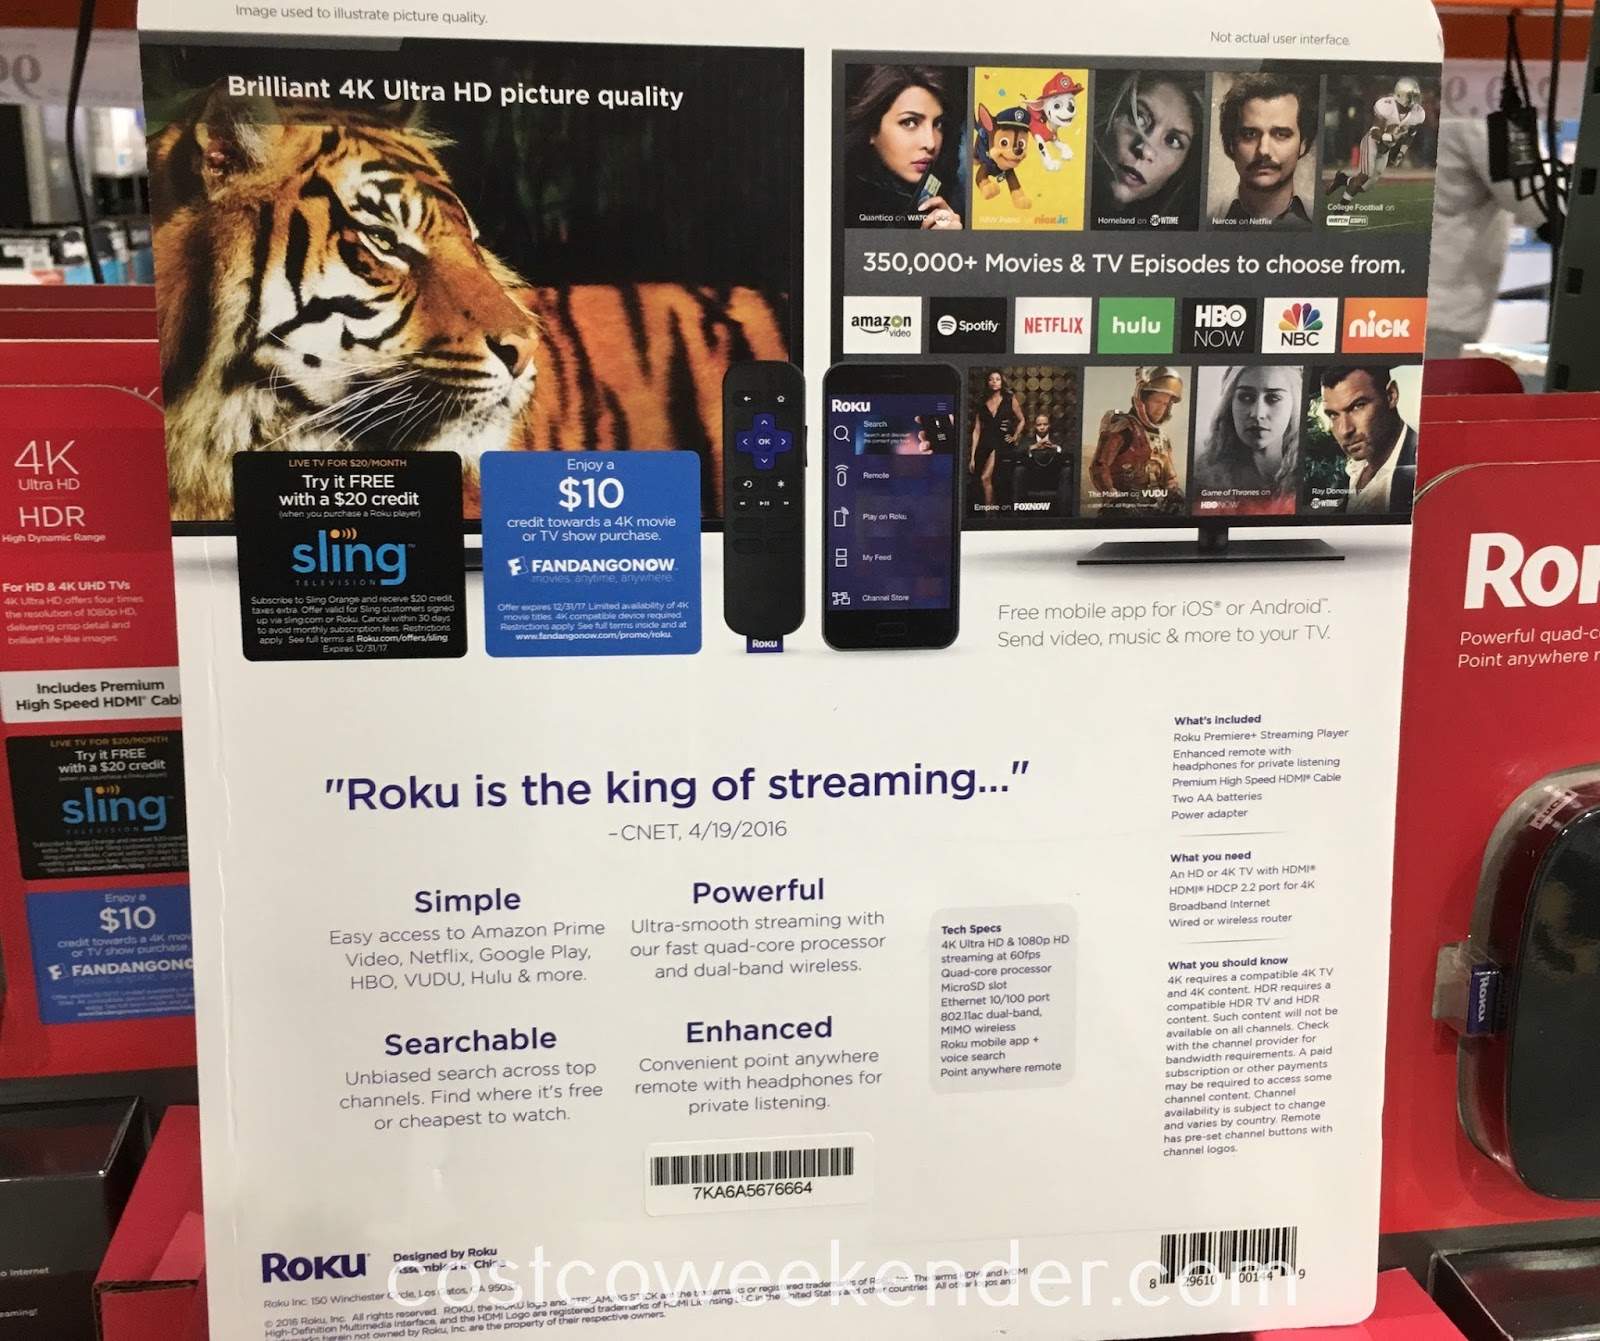 Costco 1116519 - Roku Premiere+ Streaming Media Player - great for streaming Hulu, Netflix, Amazon online content